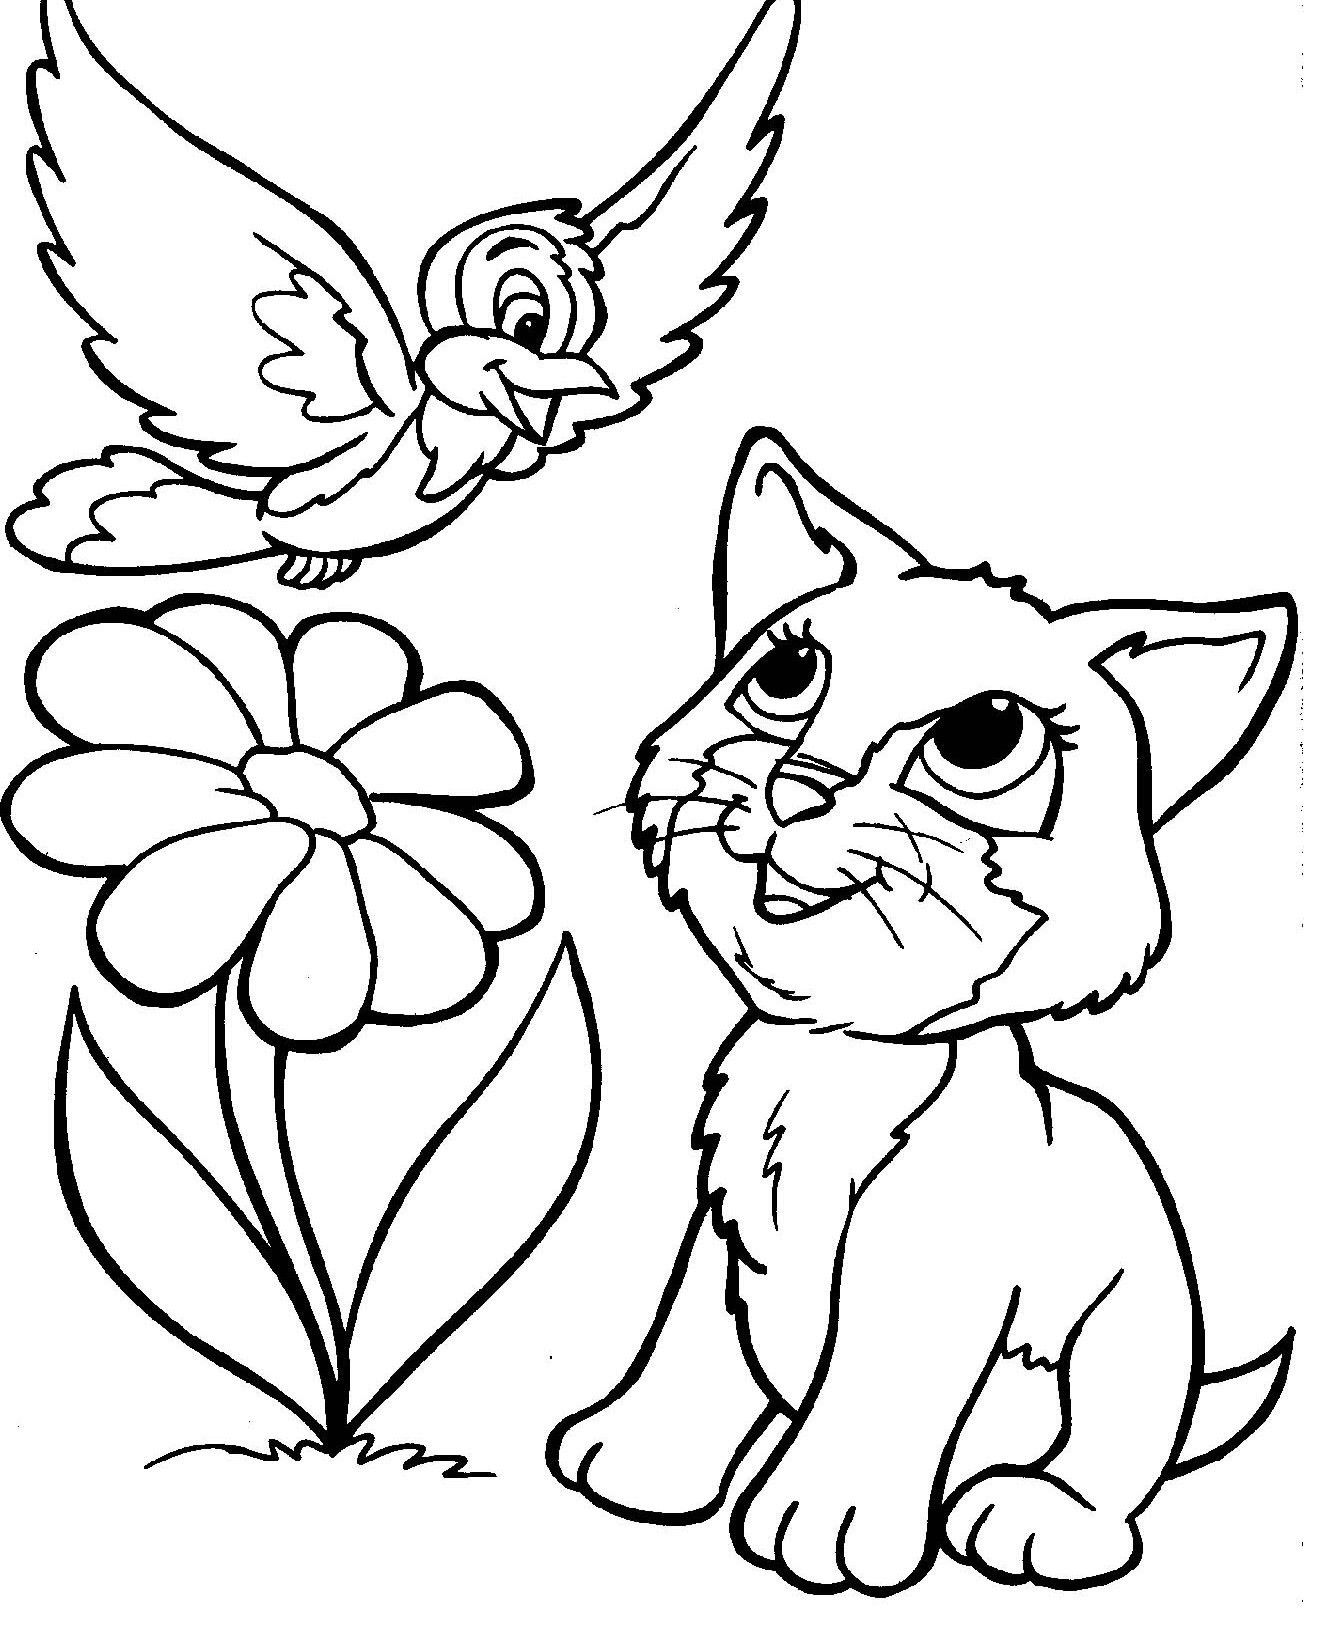 Kitty Cat Coloring Pages Through The Thousand Pictures On The Internet Regarding Kitty Cat